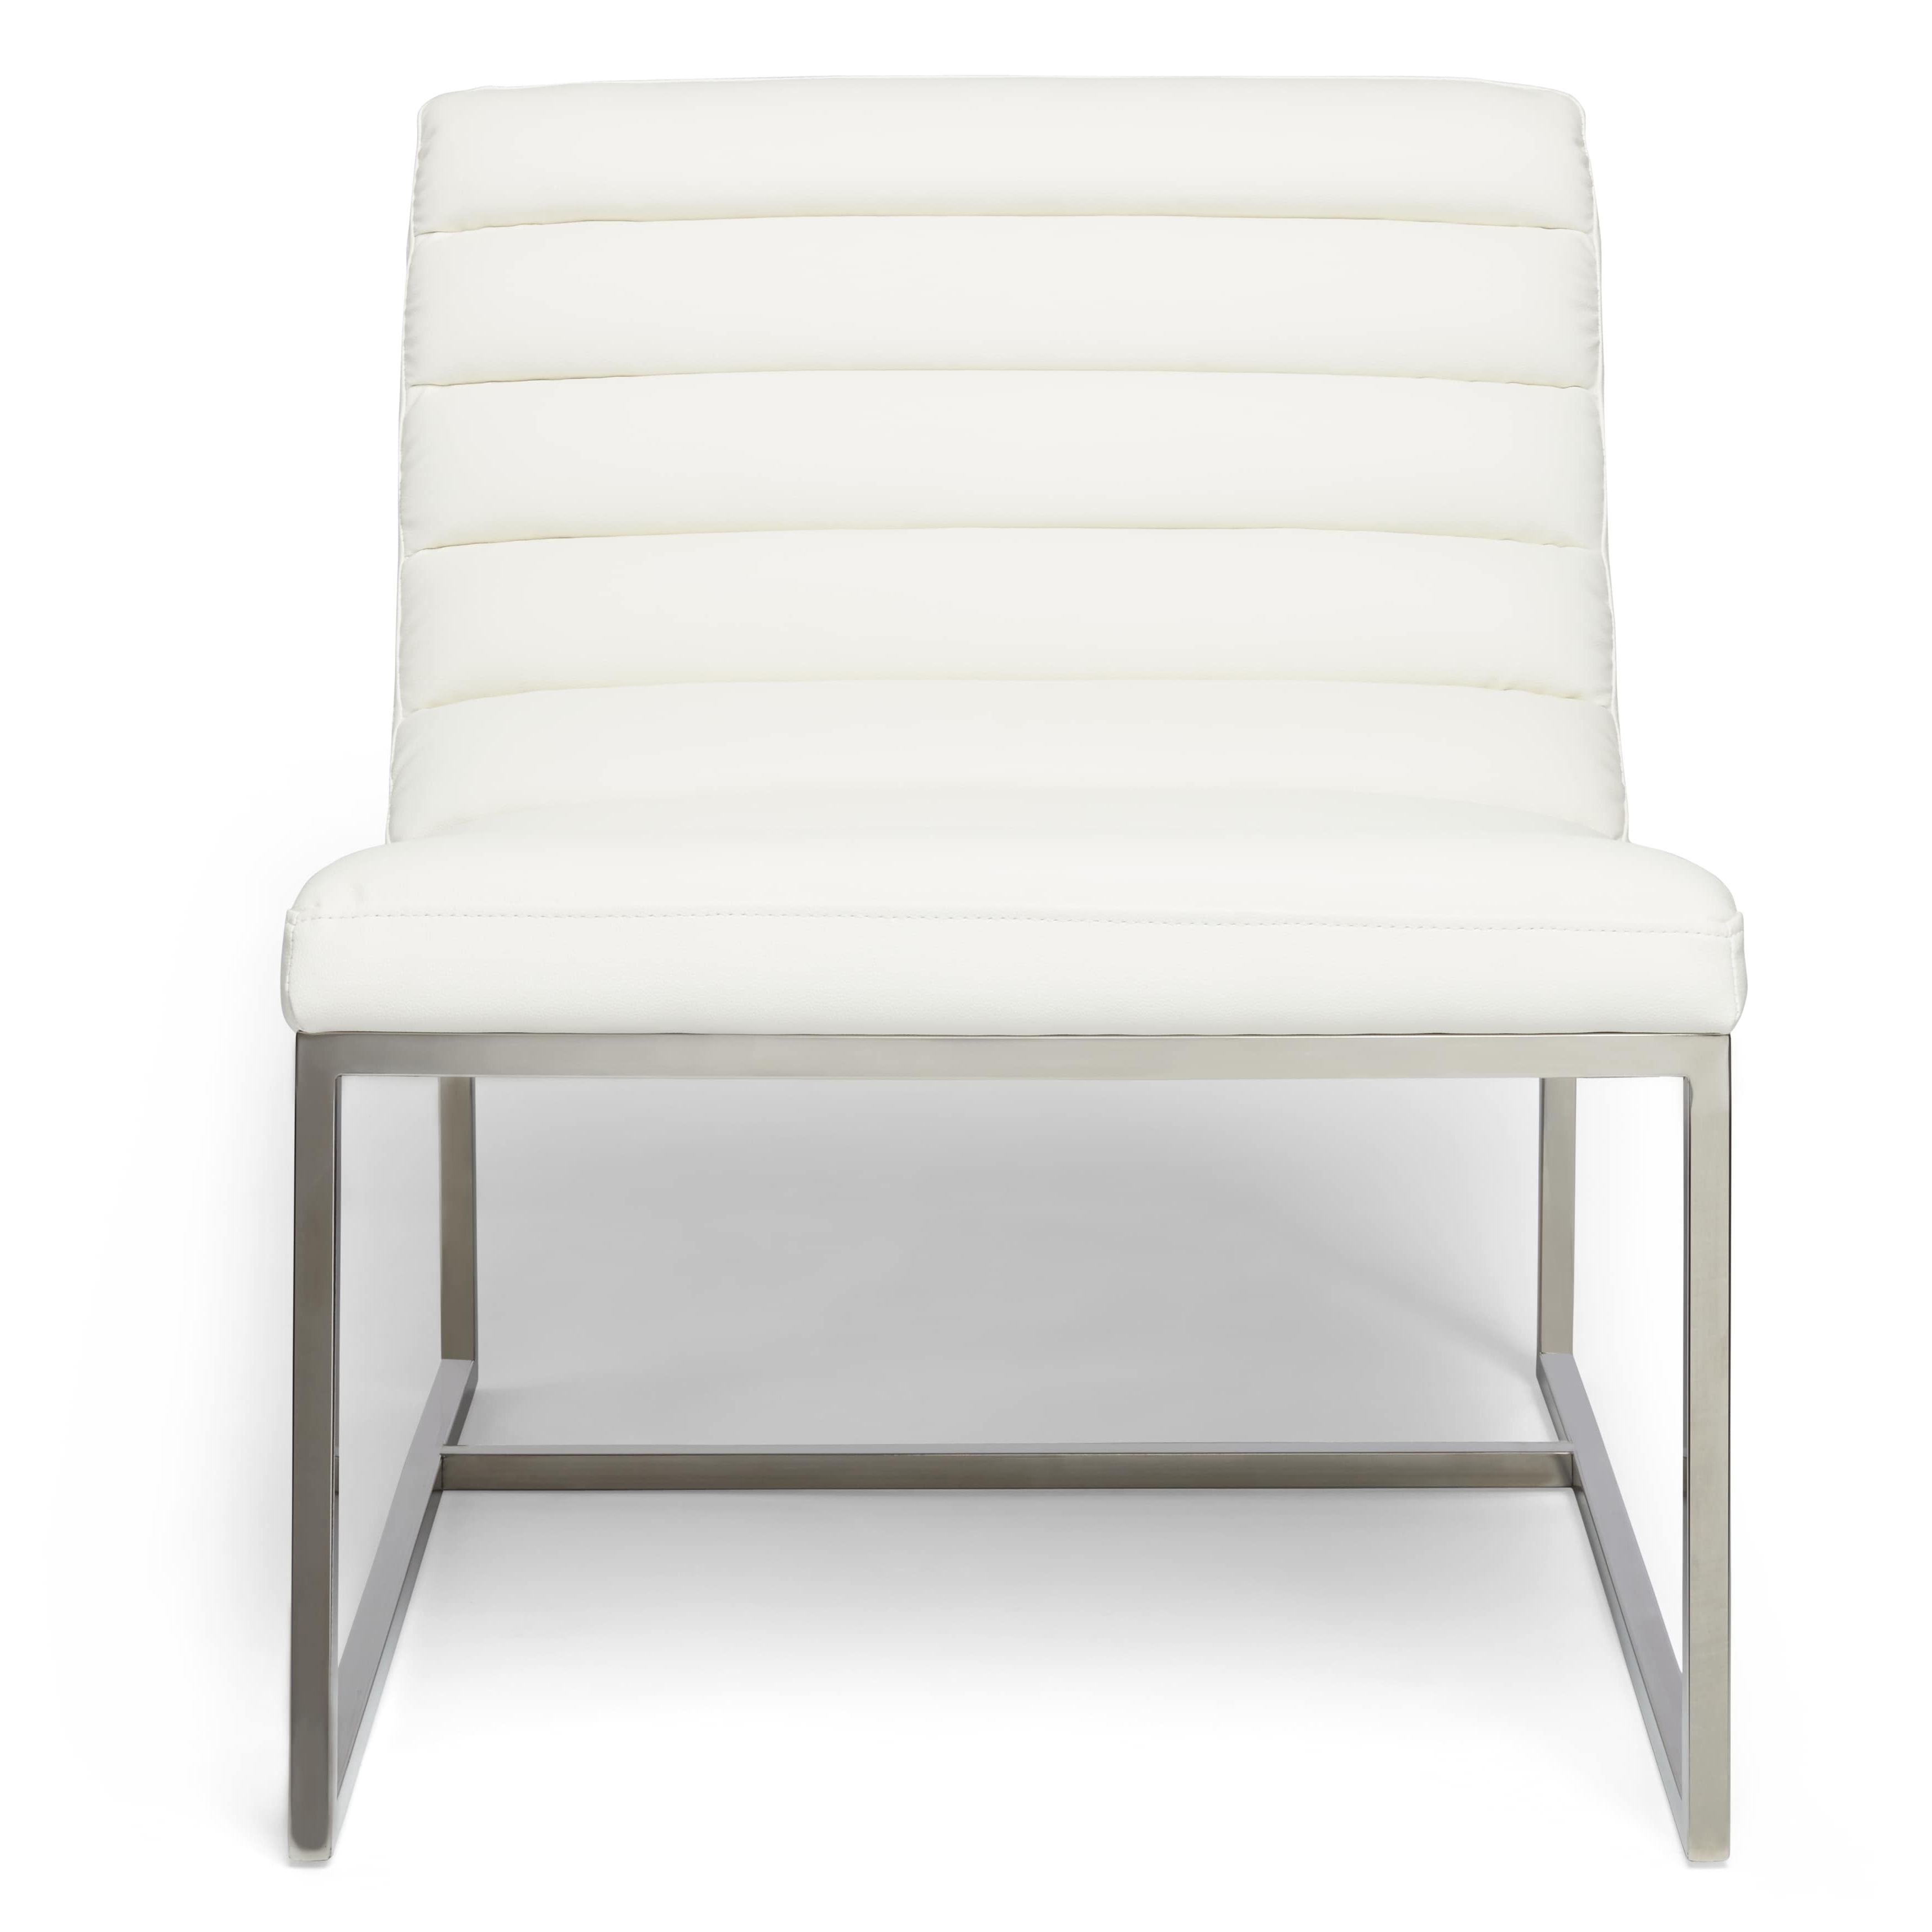 White Sofa Chairs Pertaining To Most Recently Released Parisian White Leather Sofa Chairchristopher Knight Home (View 13 of 20)